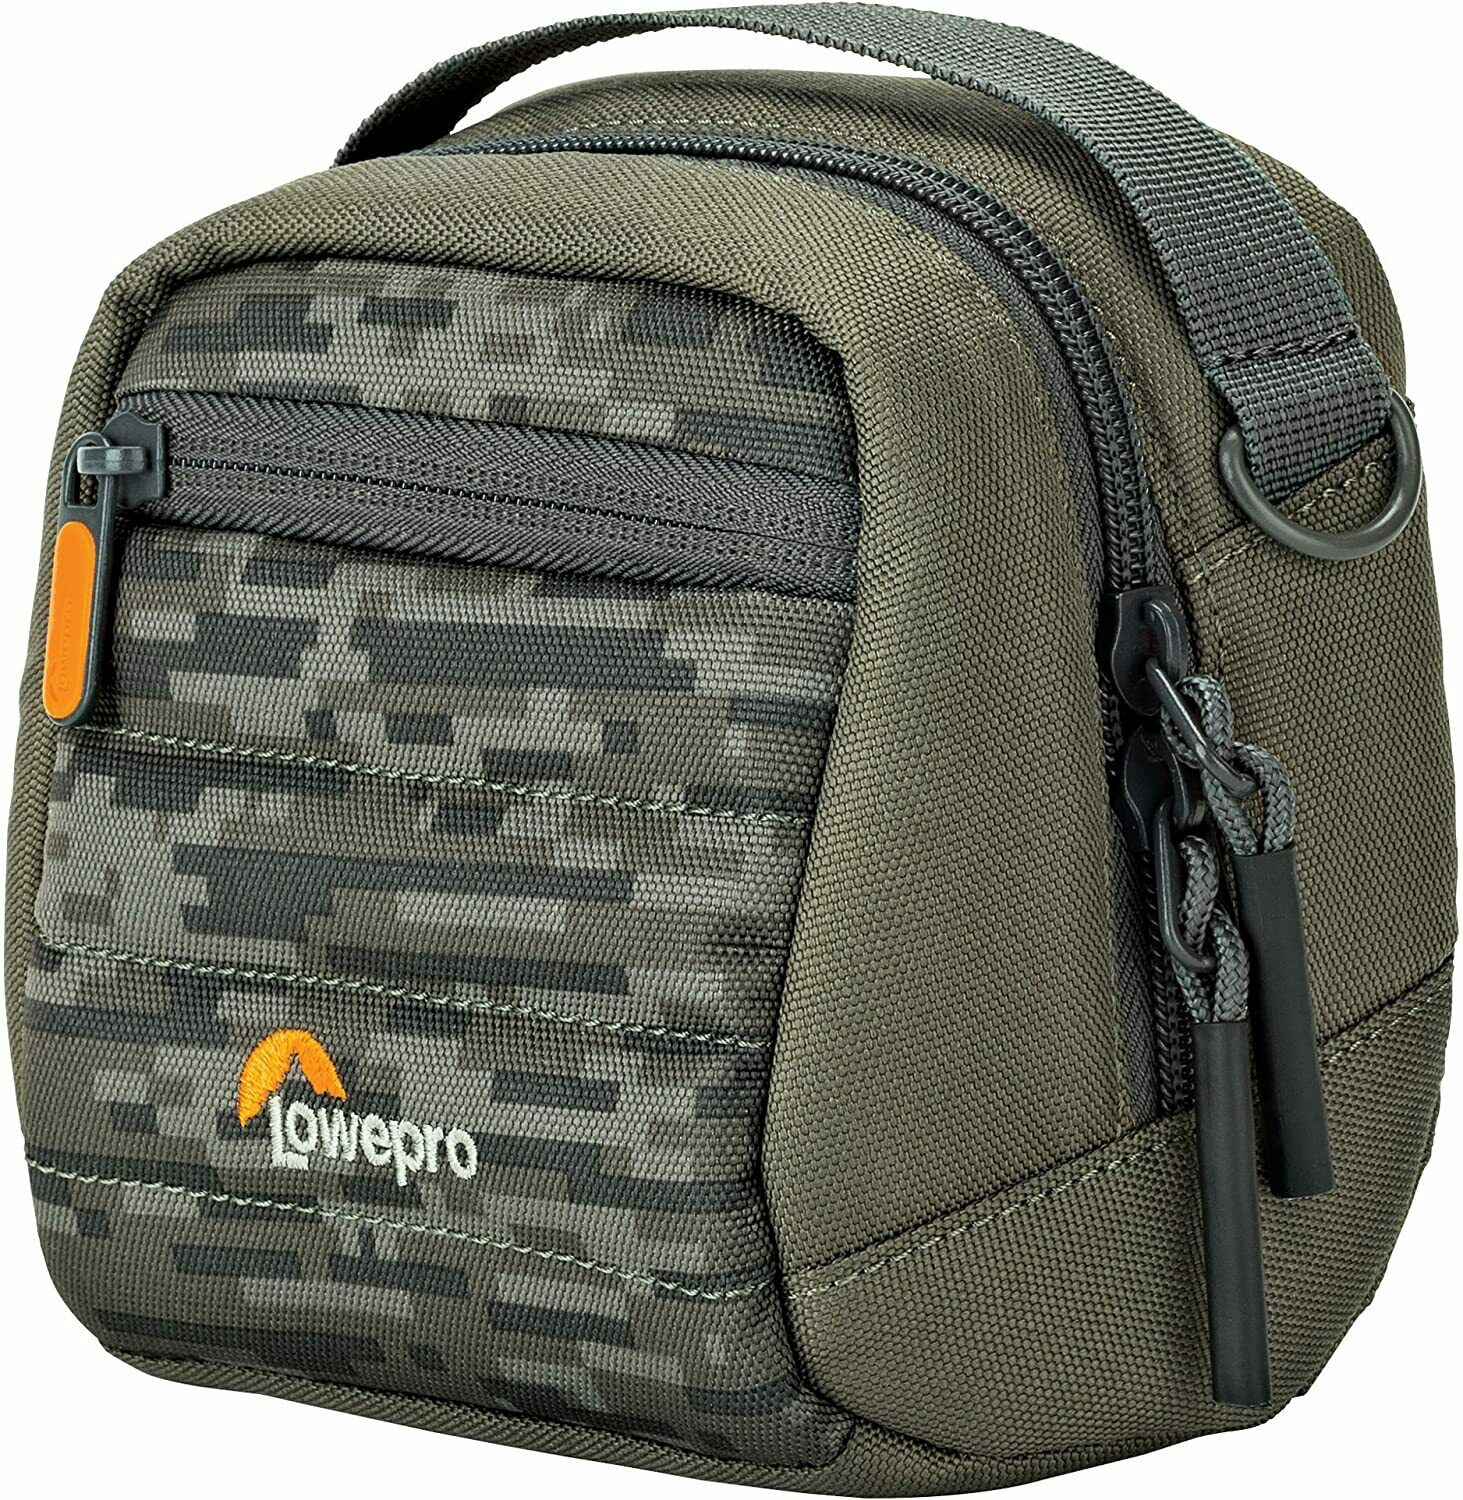 Lowepro Tahoe CS 80 for Compact System / Mirrorless Cameras (Camoflage)